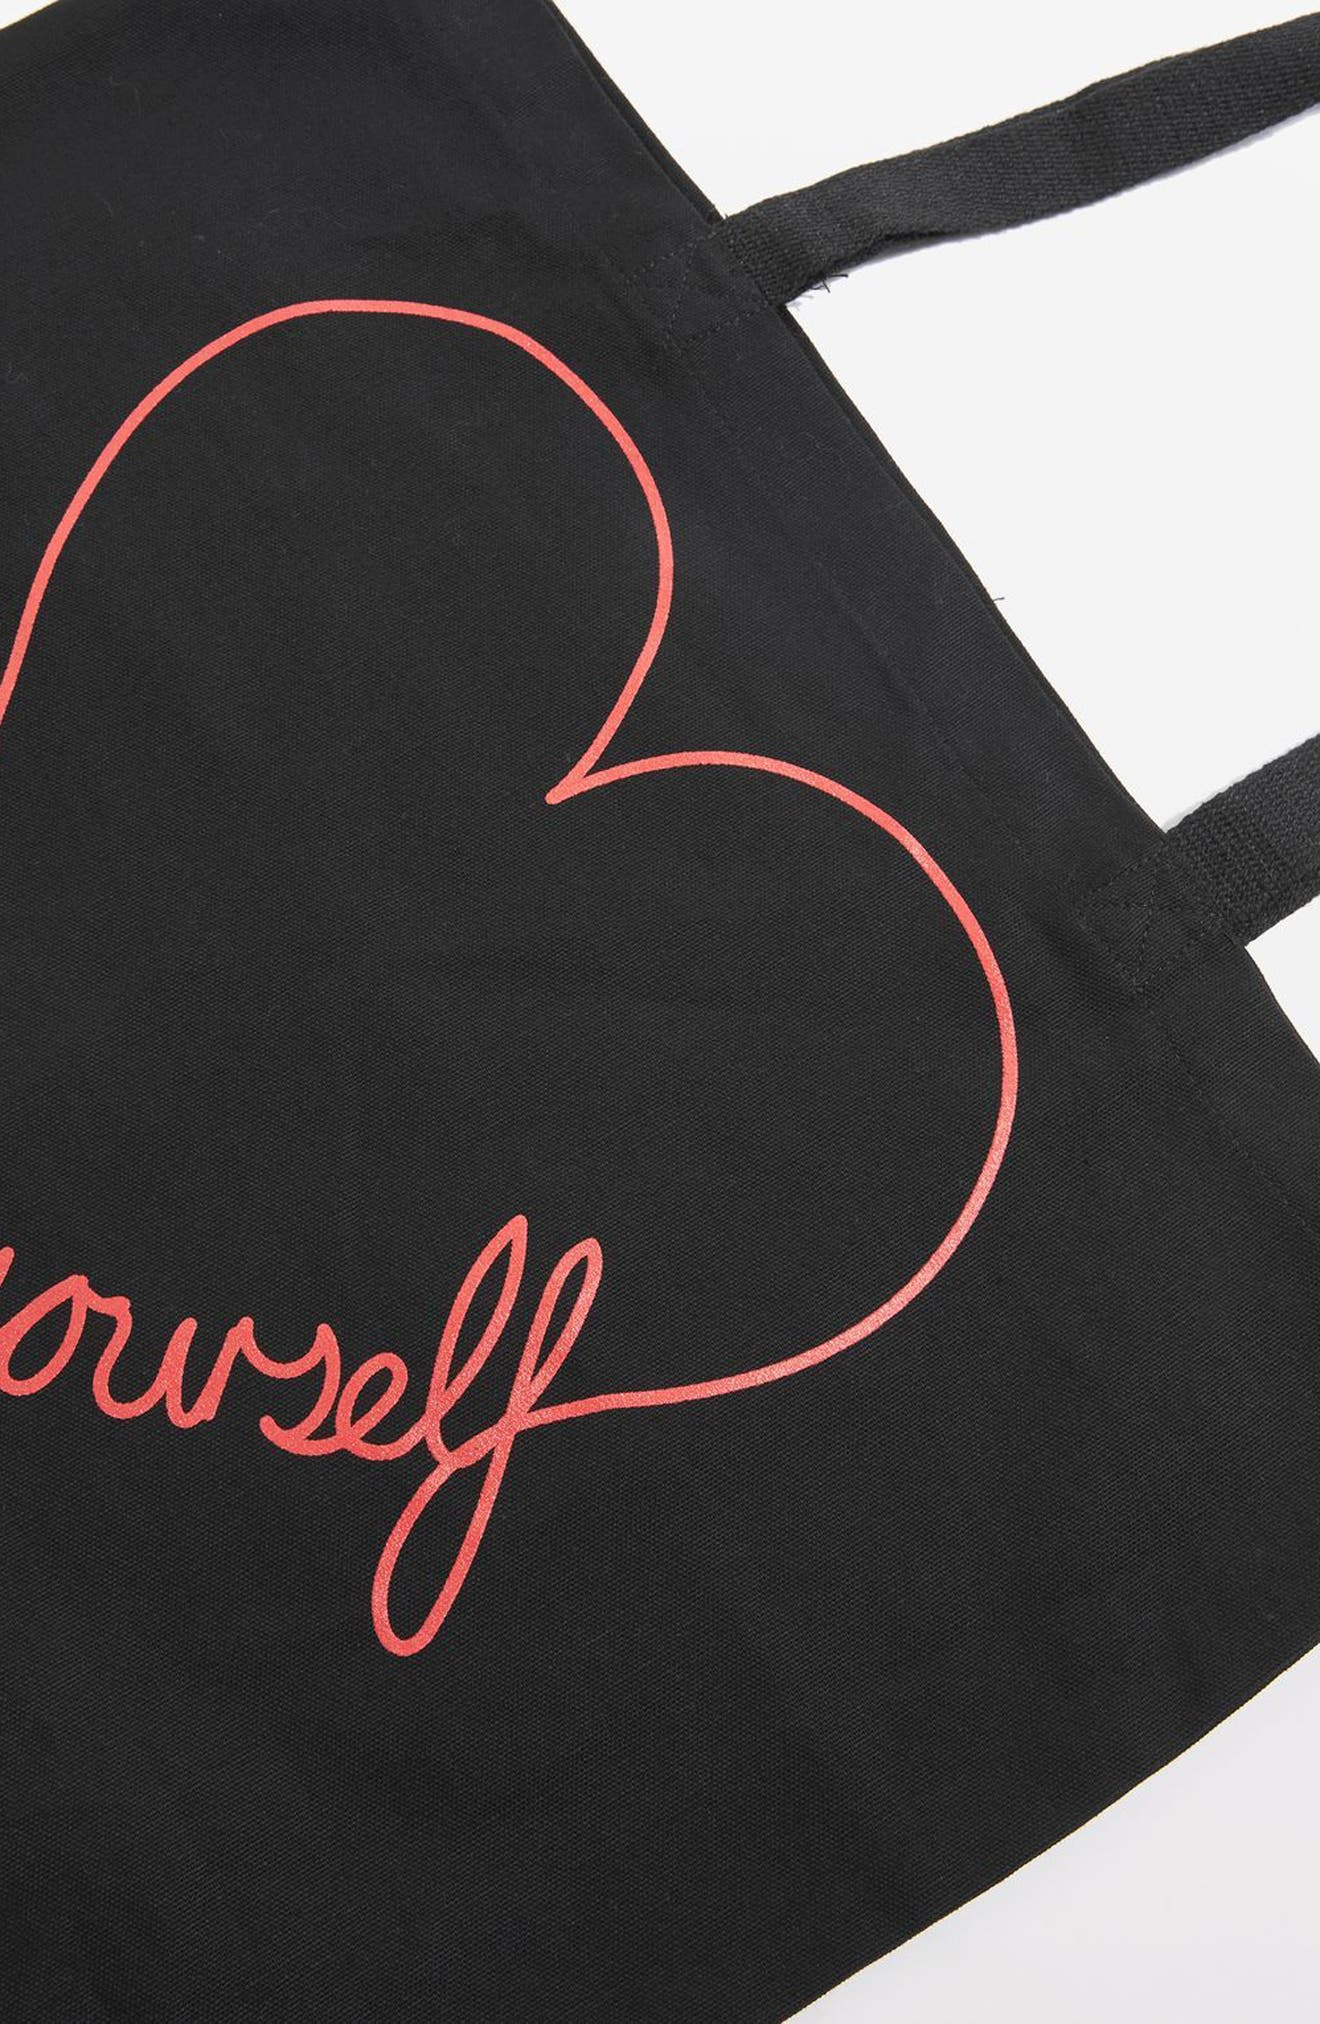 Love Yourself Canvas Tote Bag,                             Alternate thumbnail 3, color,                             001